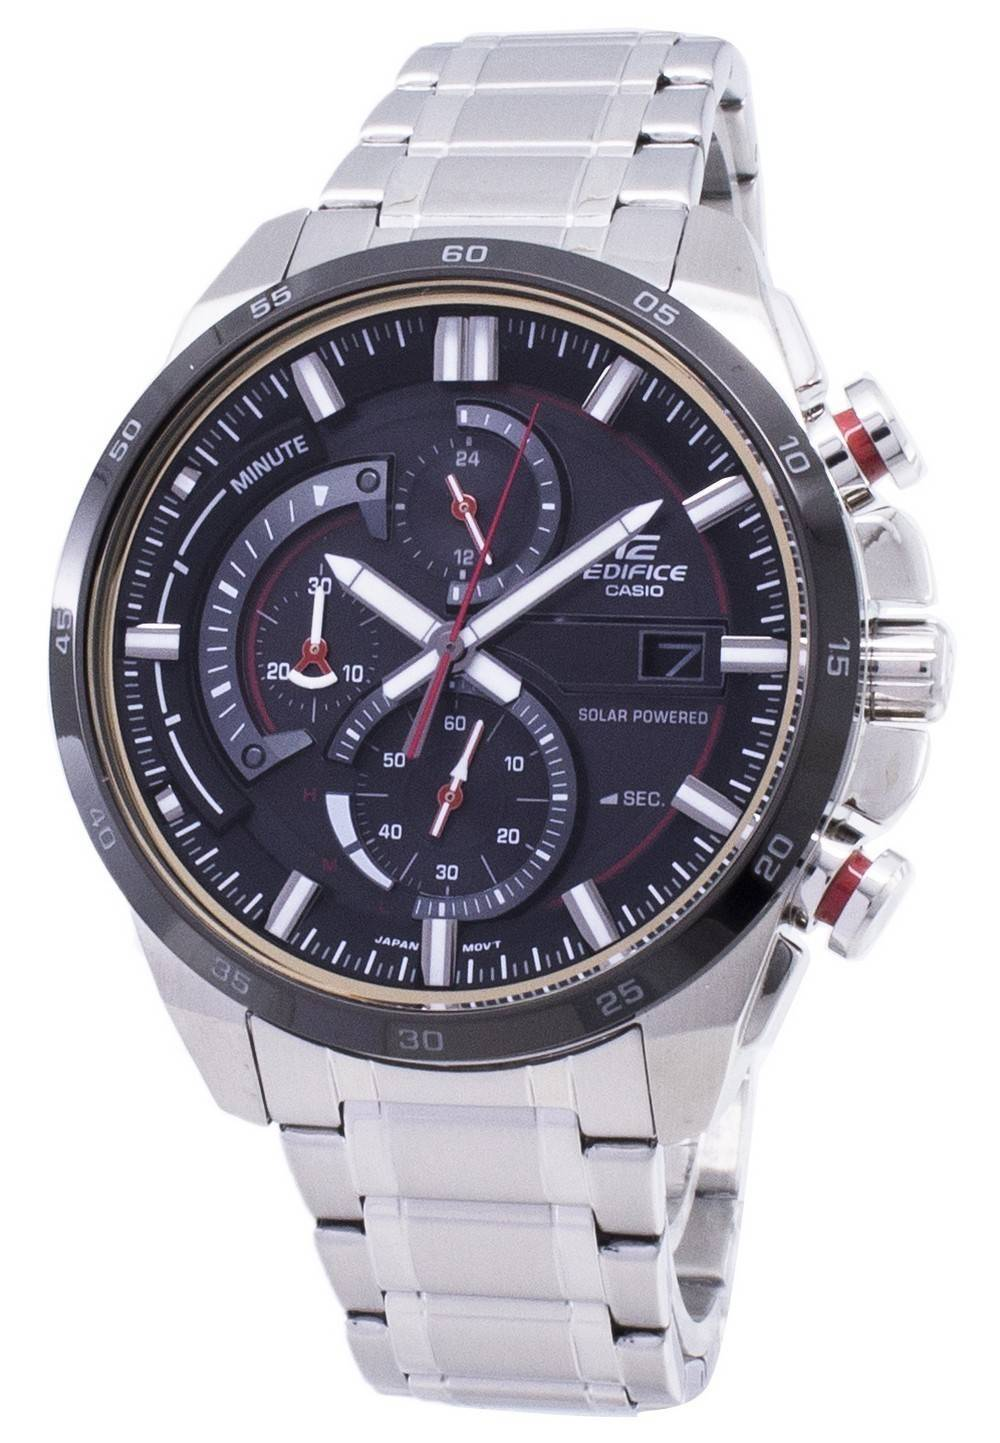 Details about Casio Edifice EQS-600DB-1A4 EQS600DB-1A4 Chronograph Analog  Mens Watch ccb33860483d